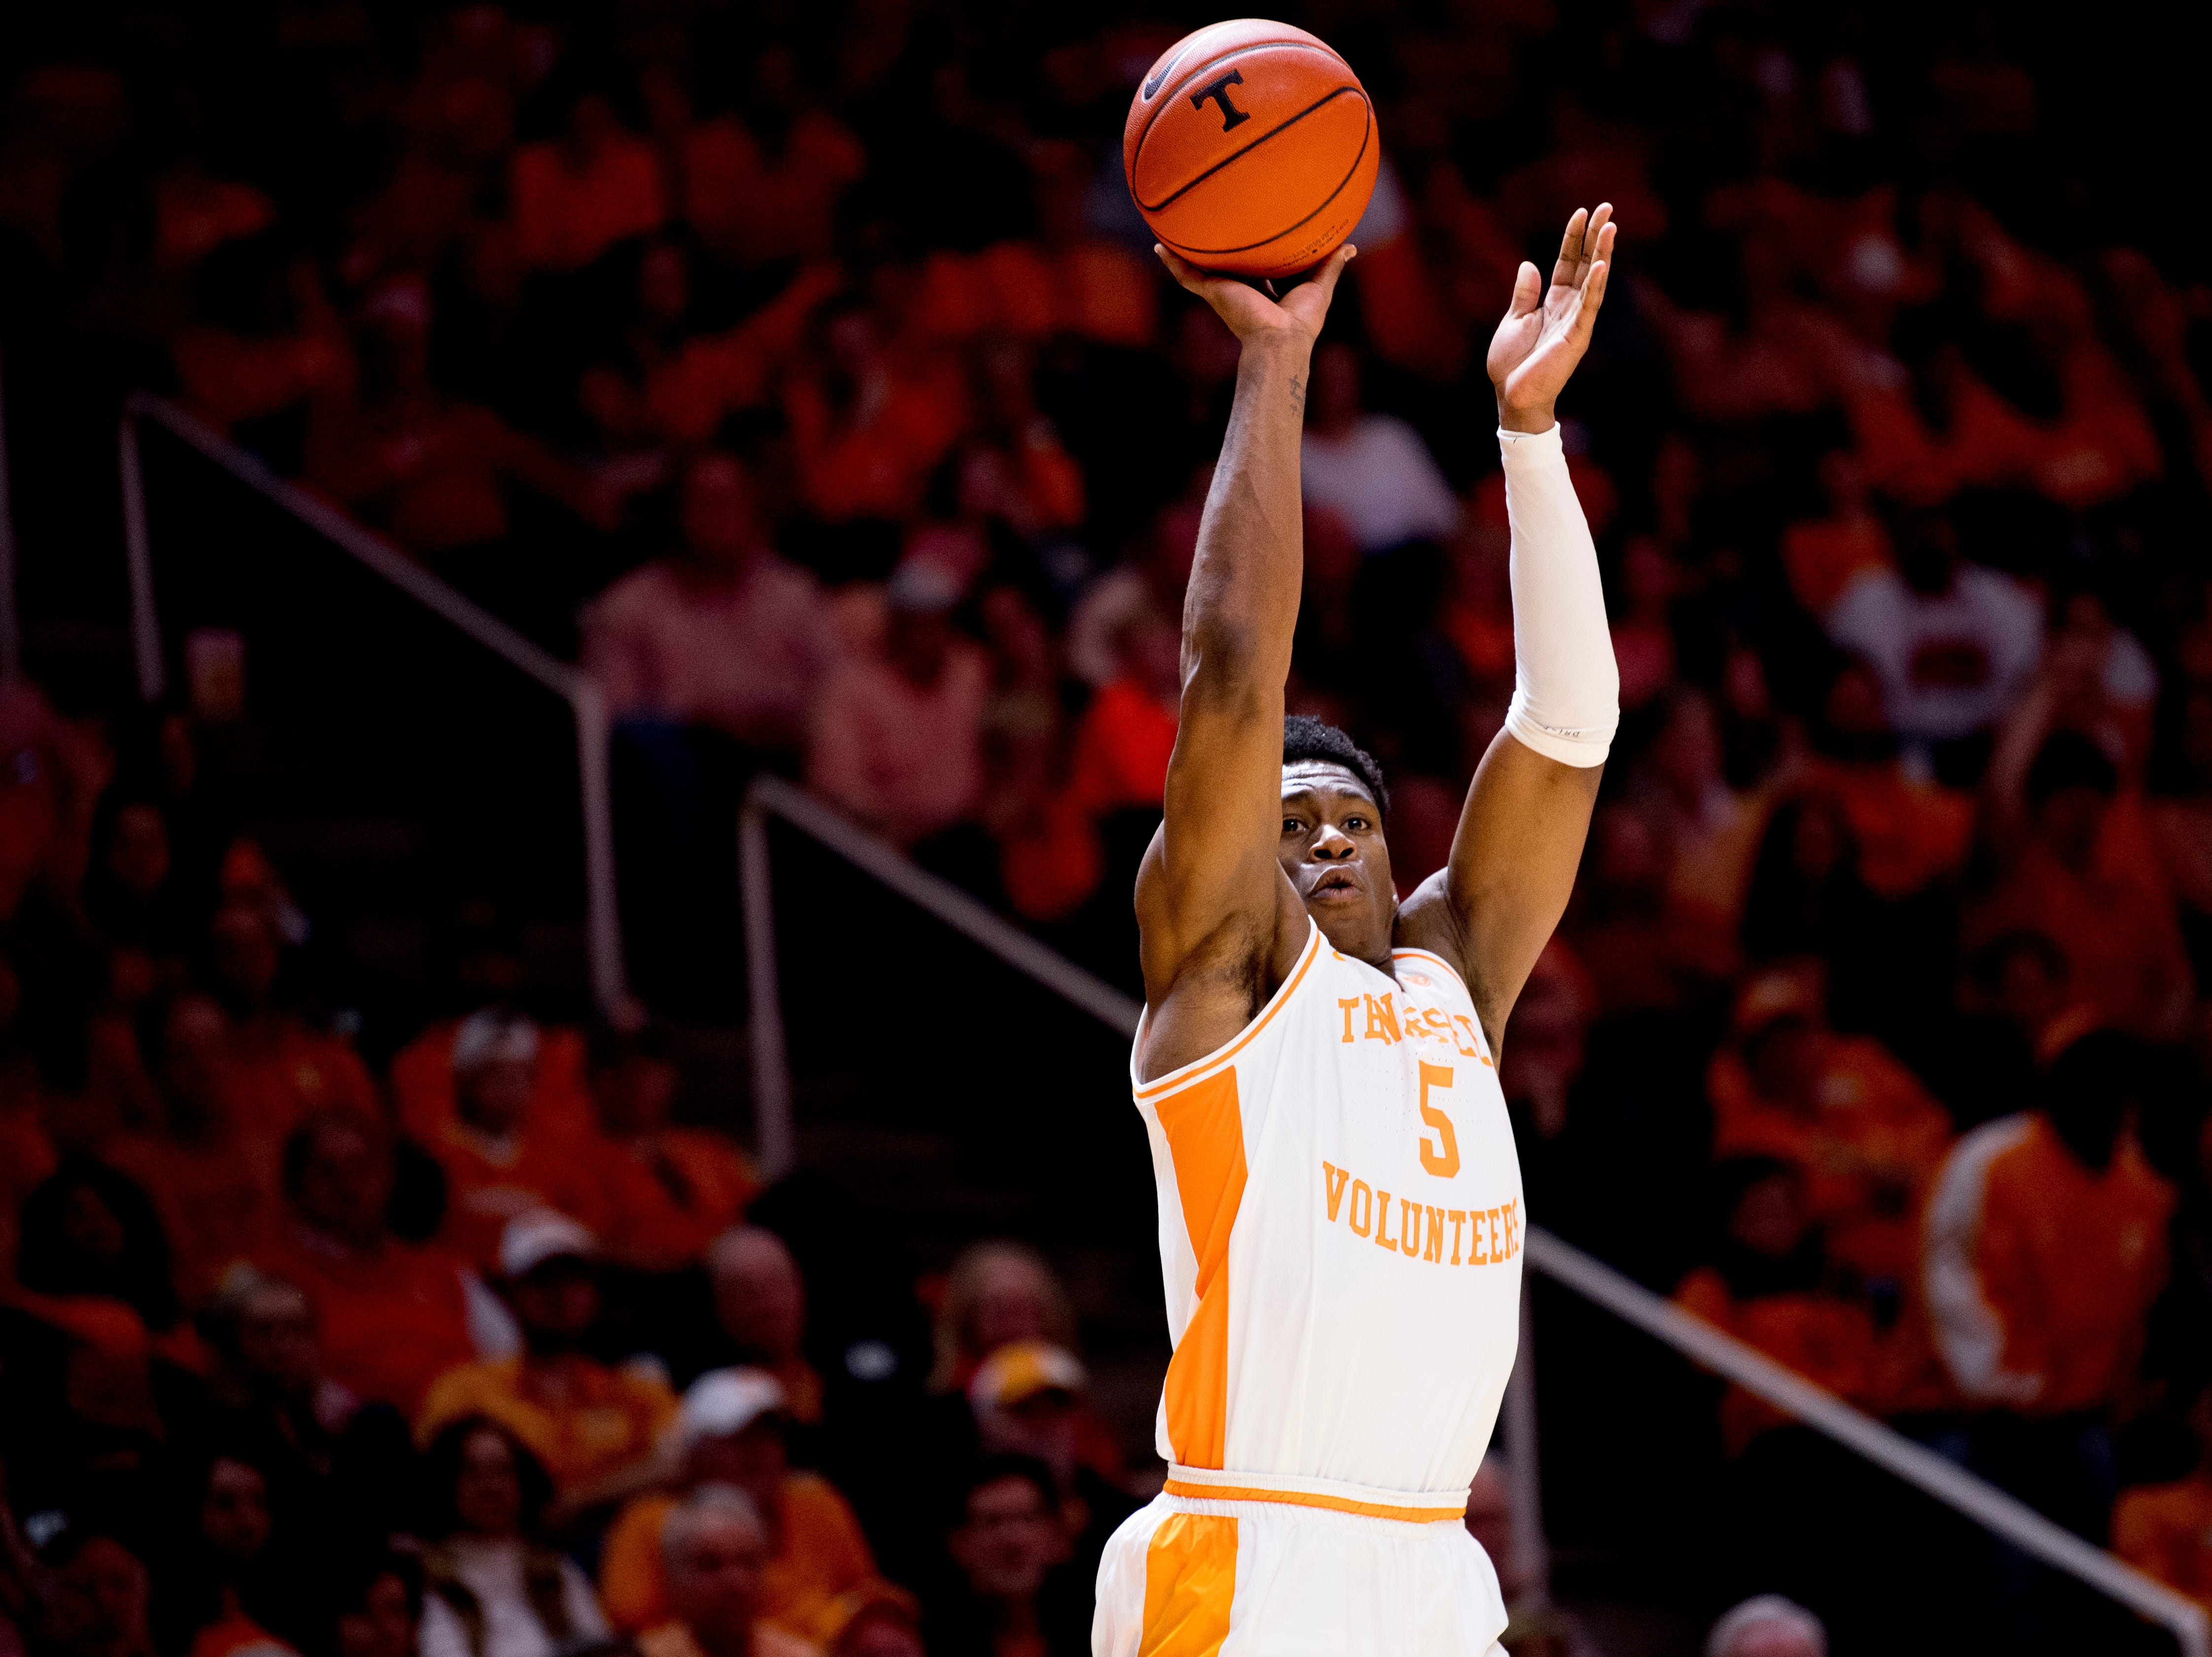 Tennessee guard Admiral Schofield (5) shoots for three points during a SEC/Big 12 Challenge game between Tennessee and West Virginia at Thompson-Boling Arena in Knoxville, Tennessee on Saturday, January 26, 2019.